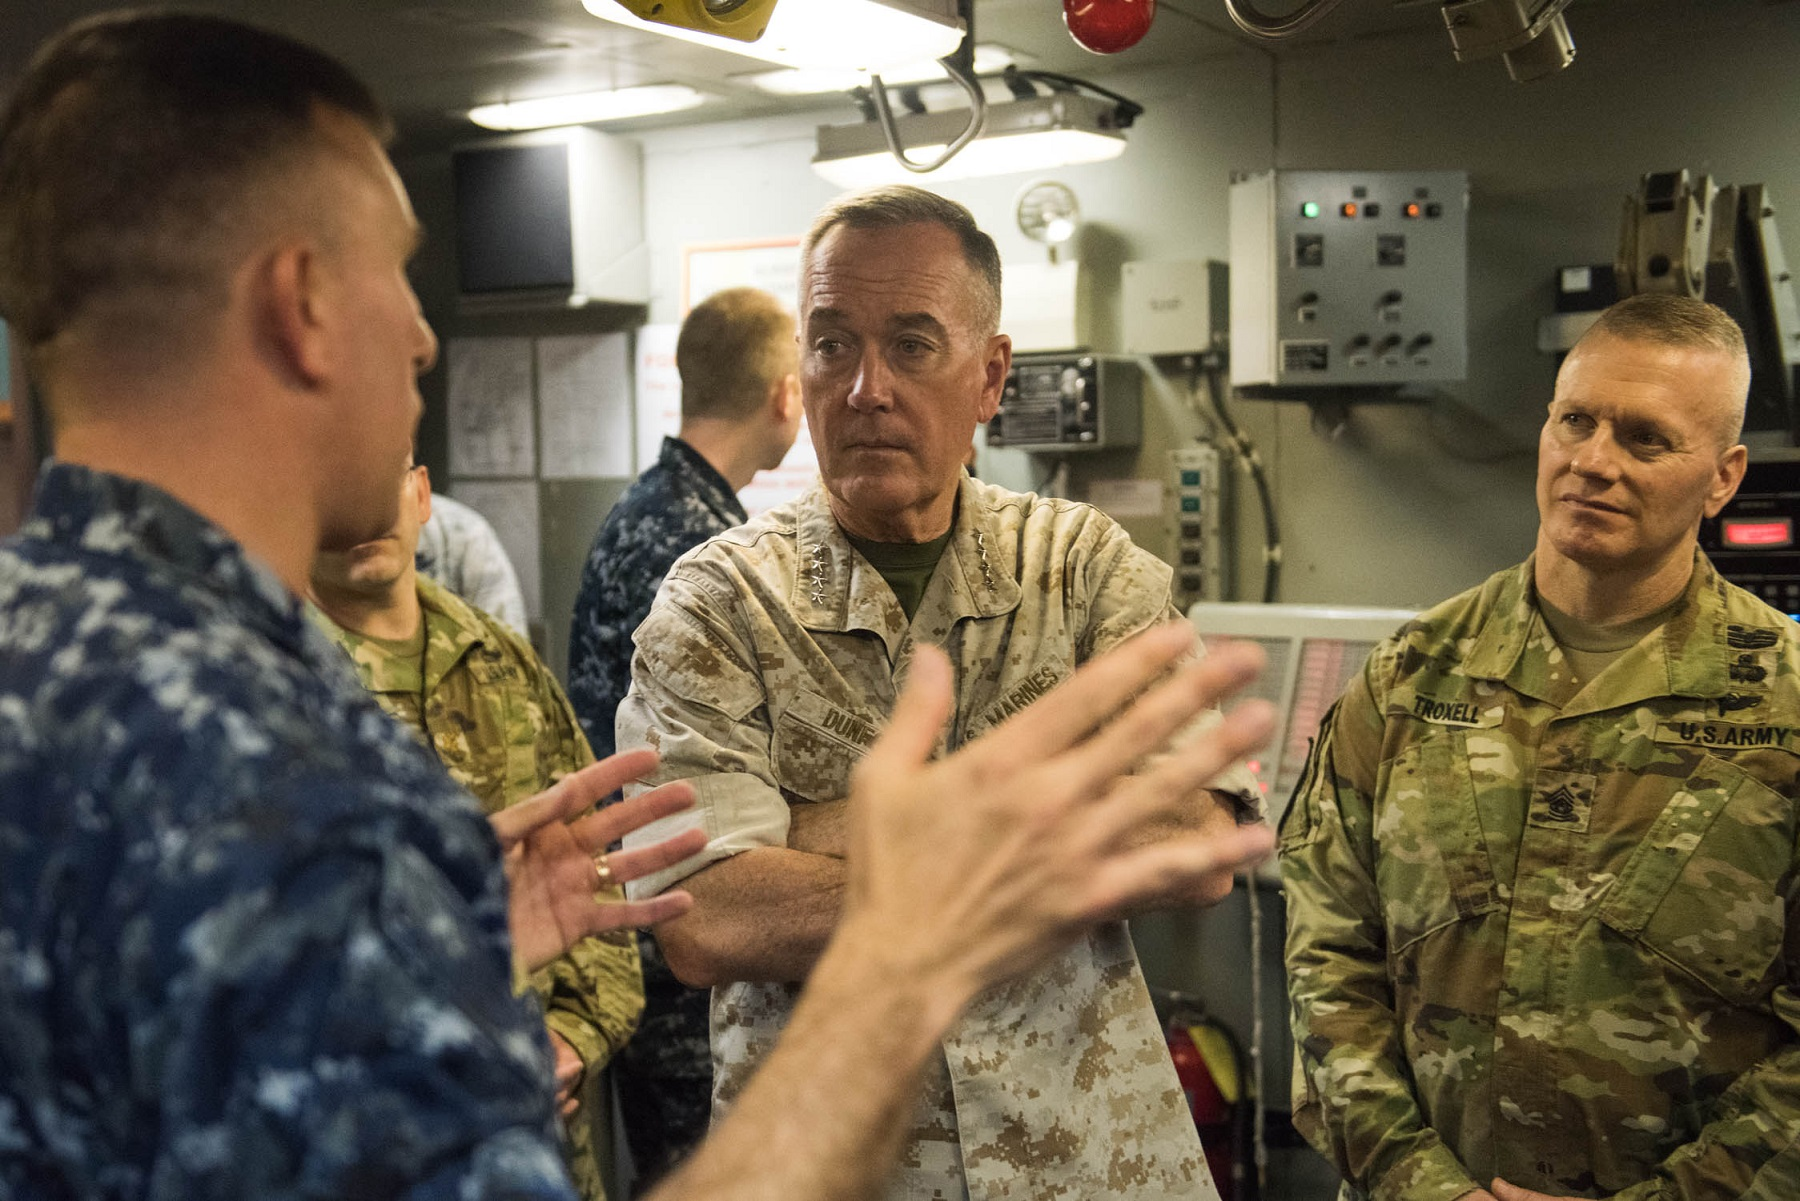 Chairman of the Joint Chiefs of Staff Gen. Joseph F. Dunford Jr., center, and his senior enlisted adviser Command Sgt. Maj. John Troxell, receive a briefing at Naval Submarine Base, Kings Bay, Ga., last year. (D. Myles Cullen/DoD)